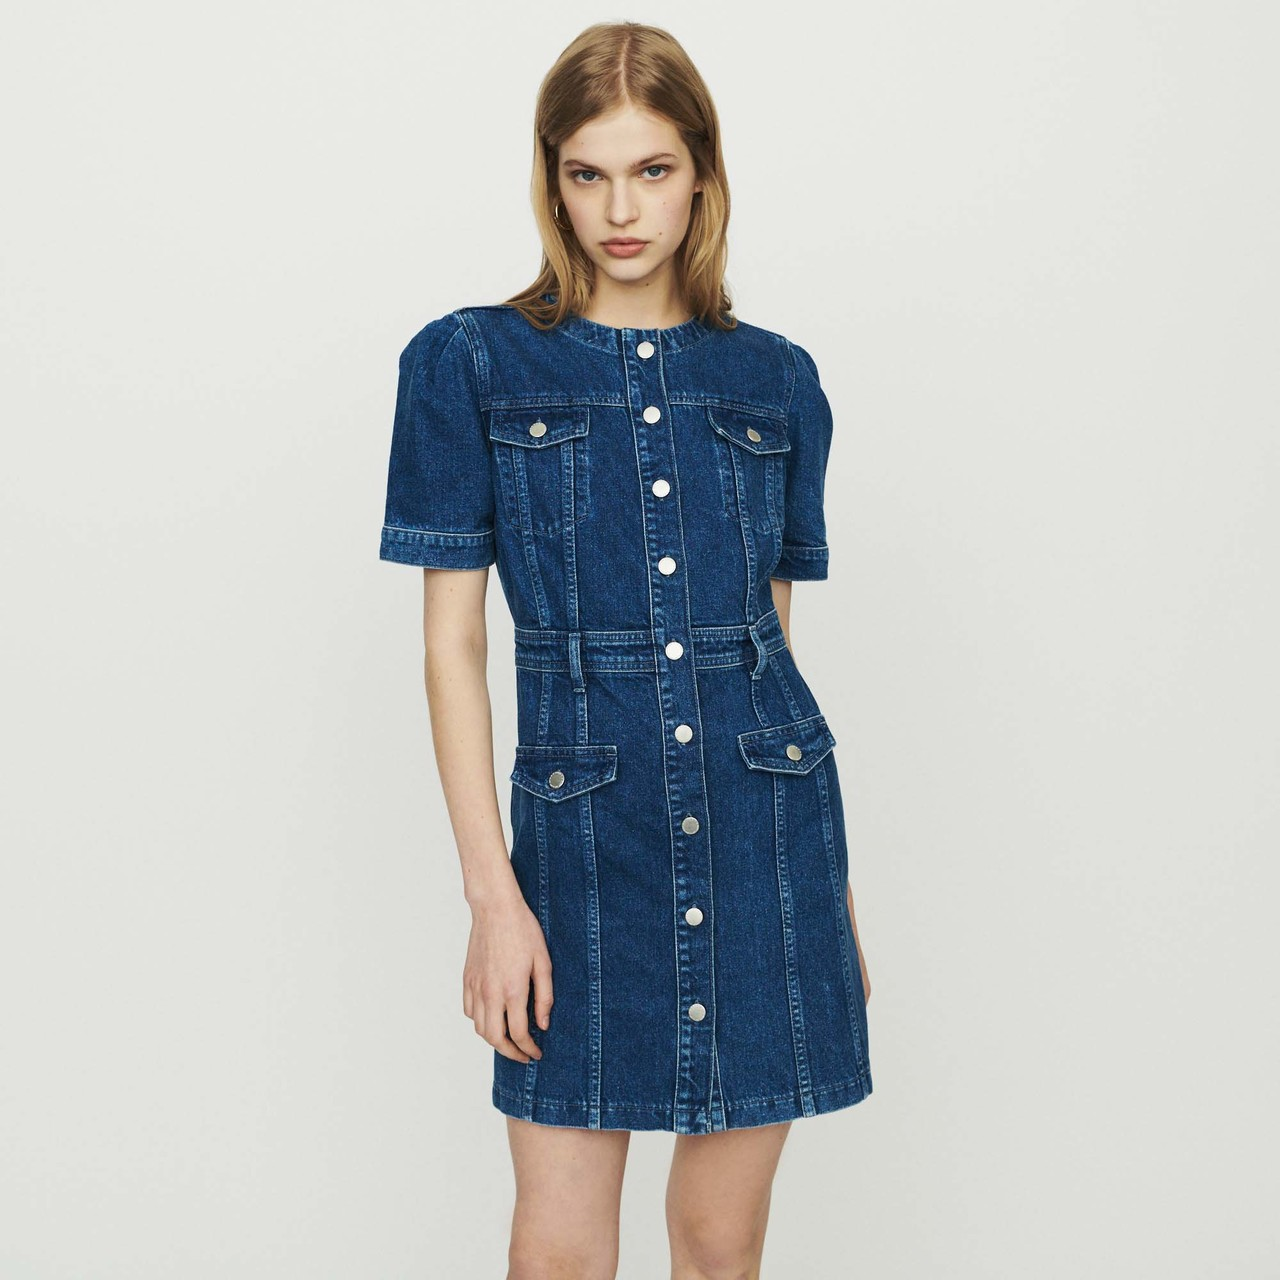 Denim Dress - Denim